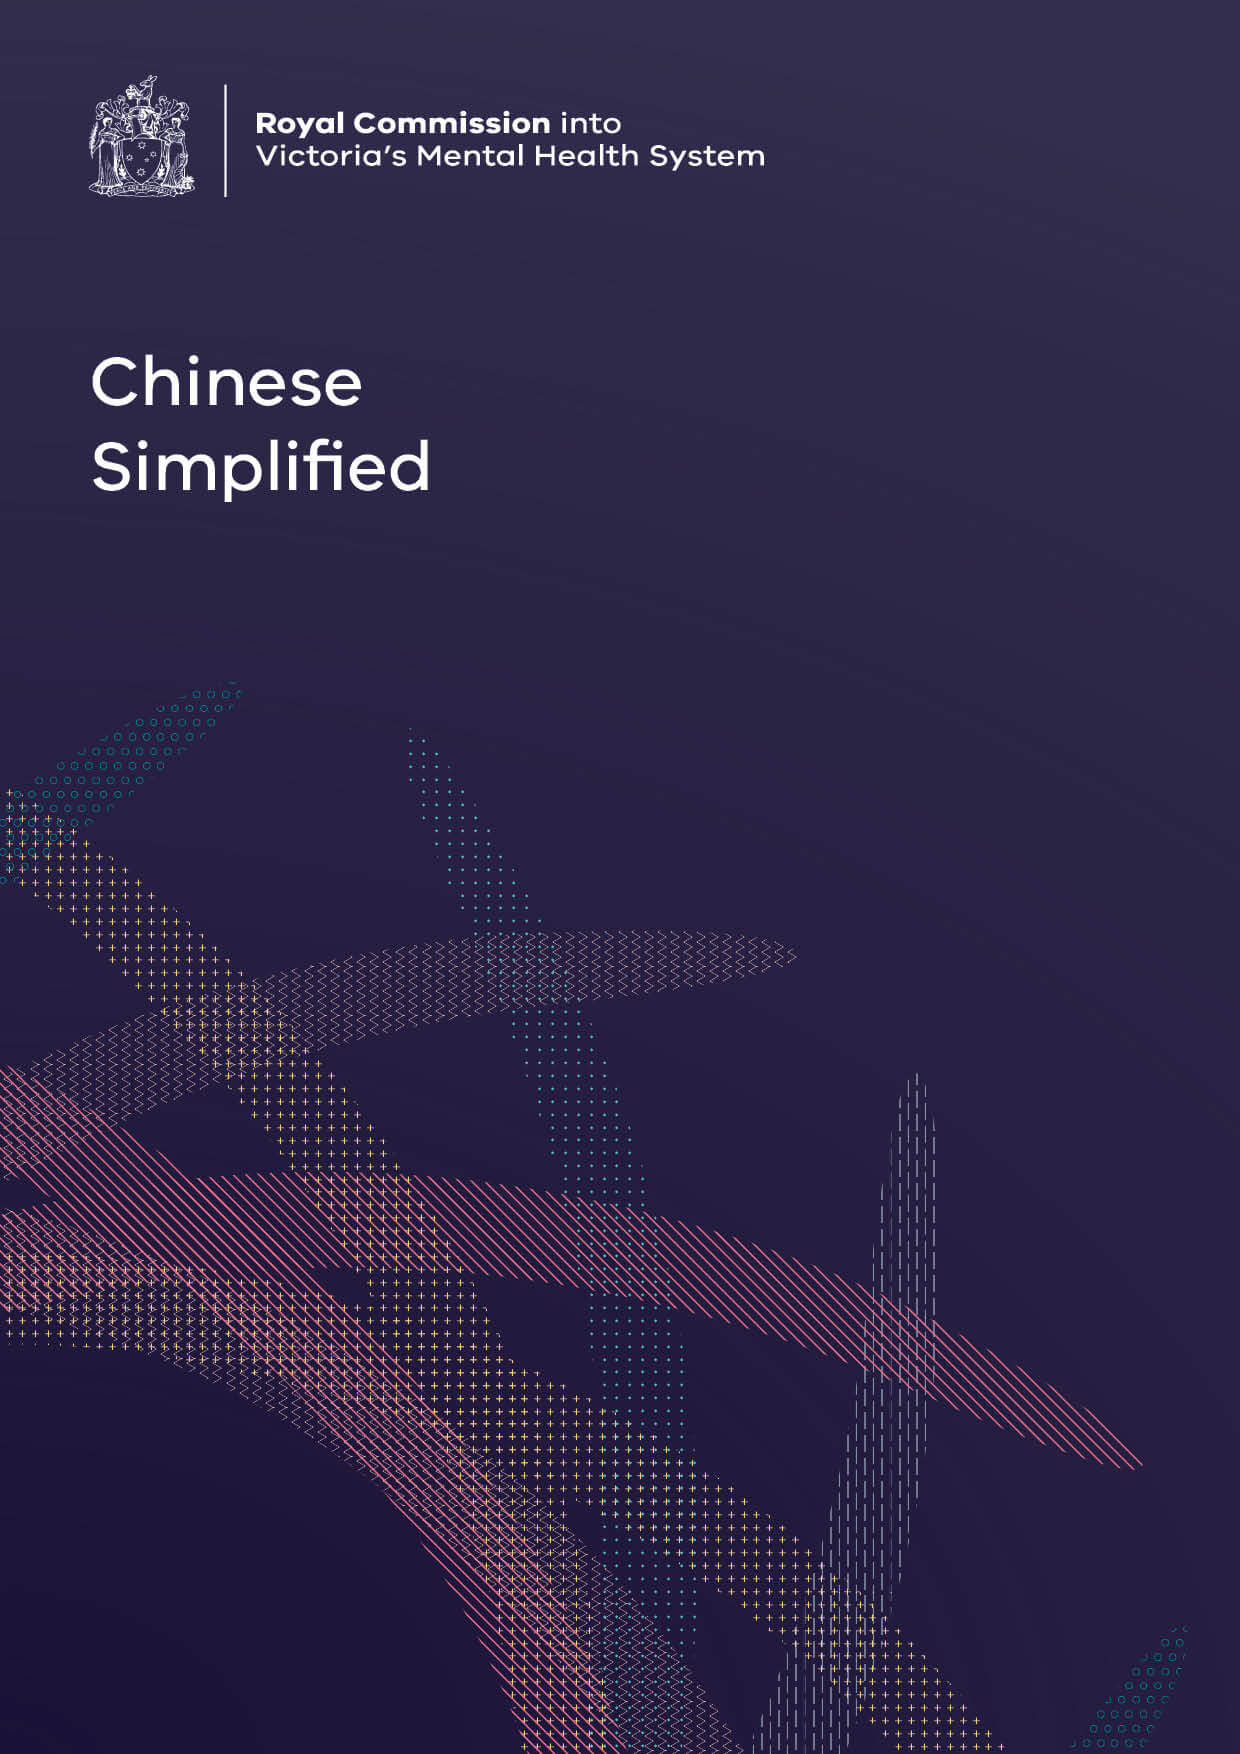 RCVMHS_FinalReport_Covers_Chinese-Simplified